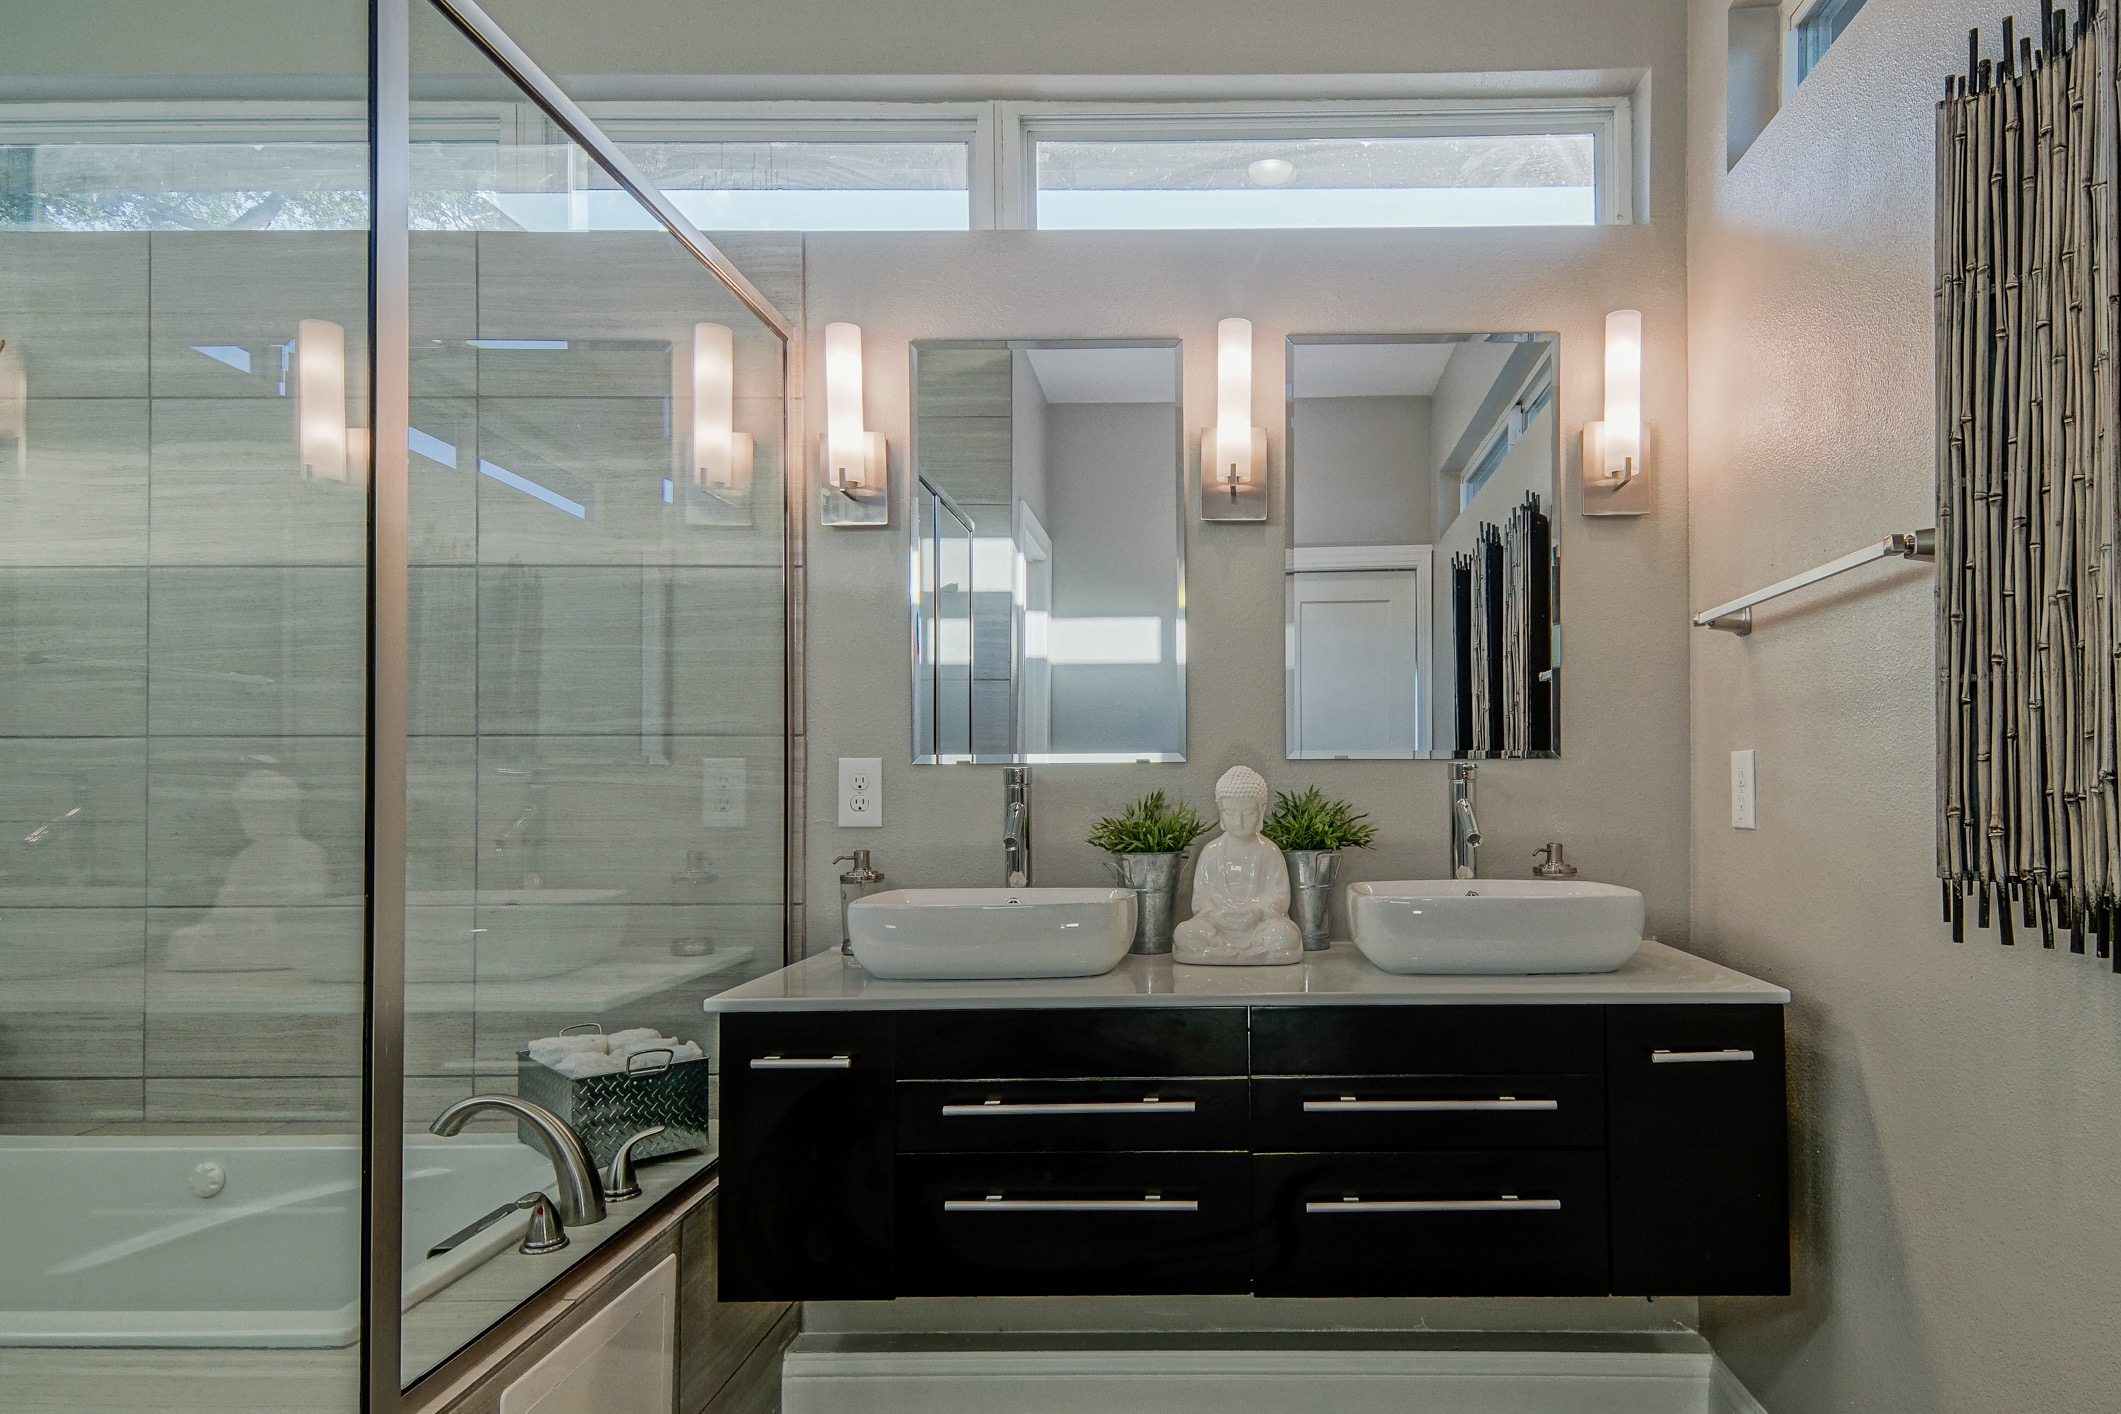 Contemporary Master Bathroom With Light Walls (Image 5 of 19)